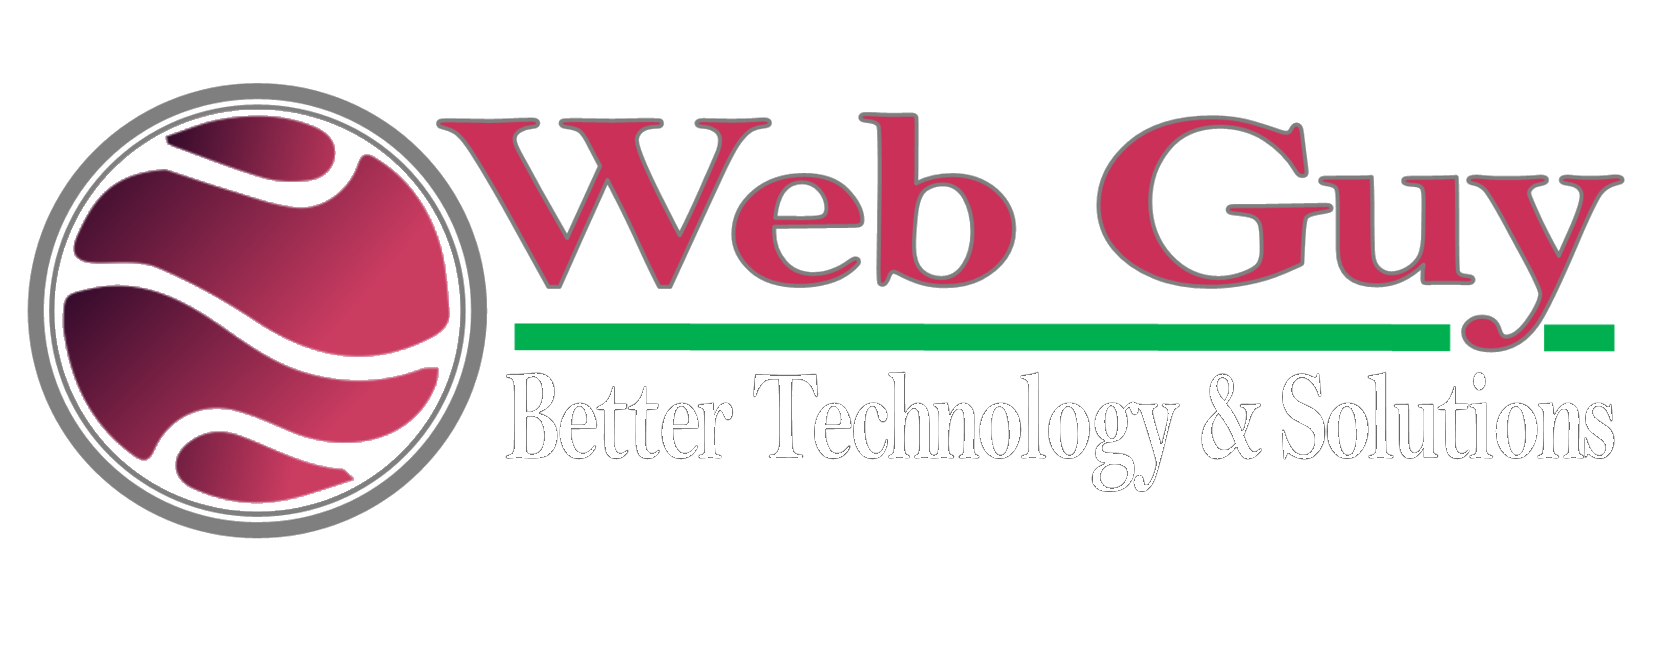 Web Guy logo